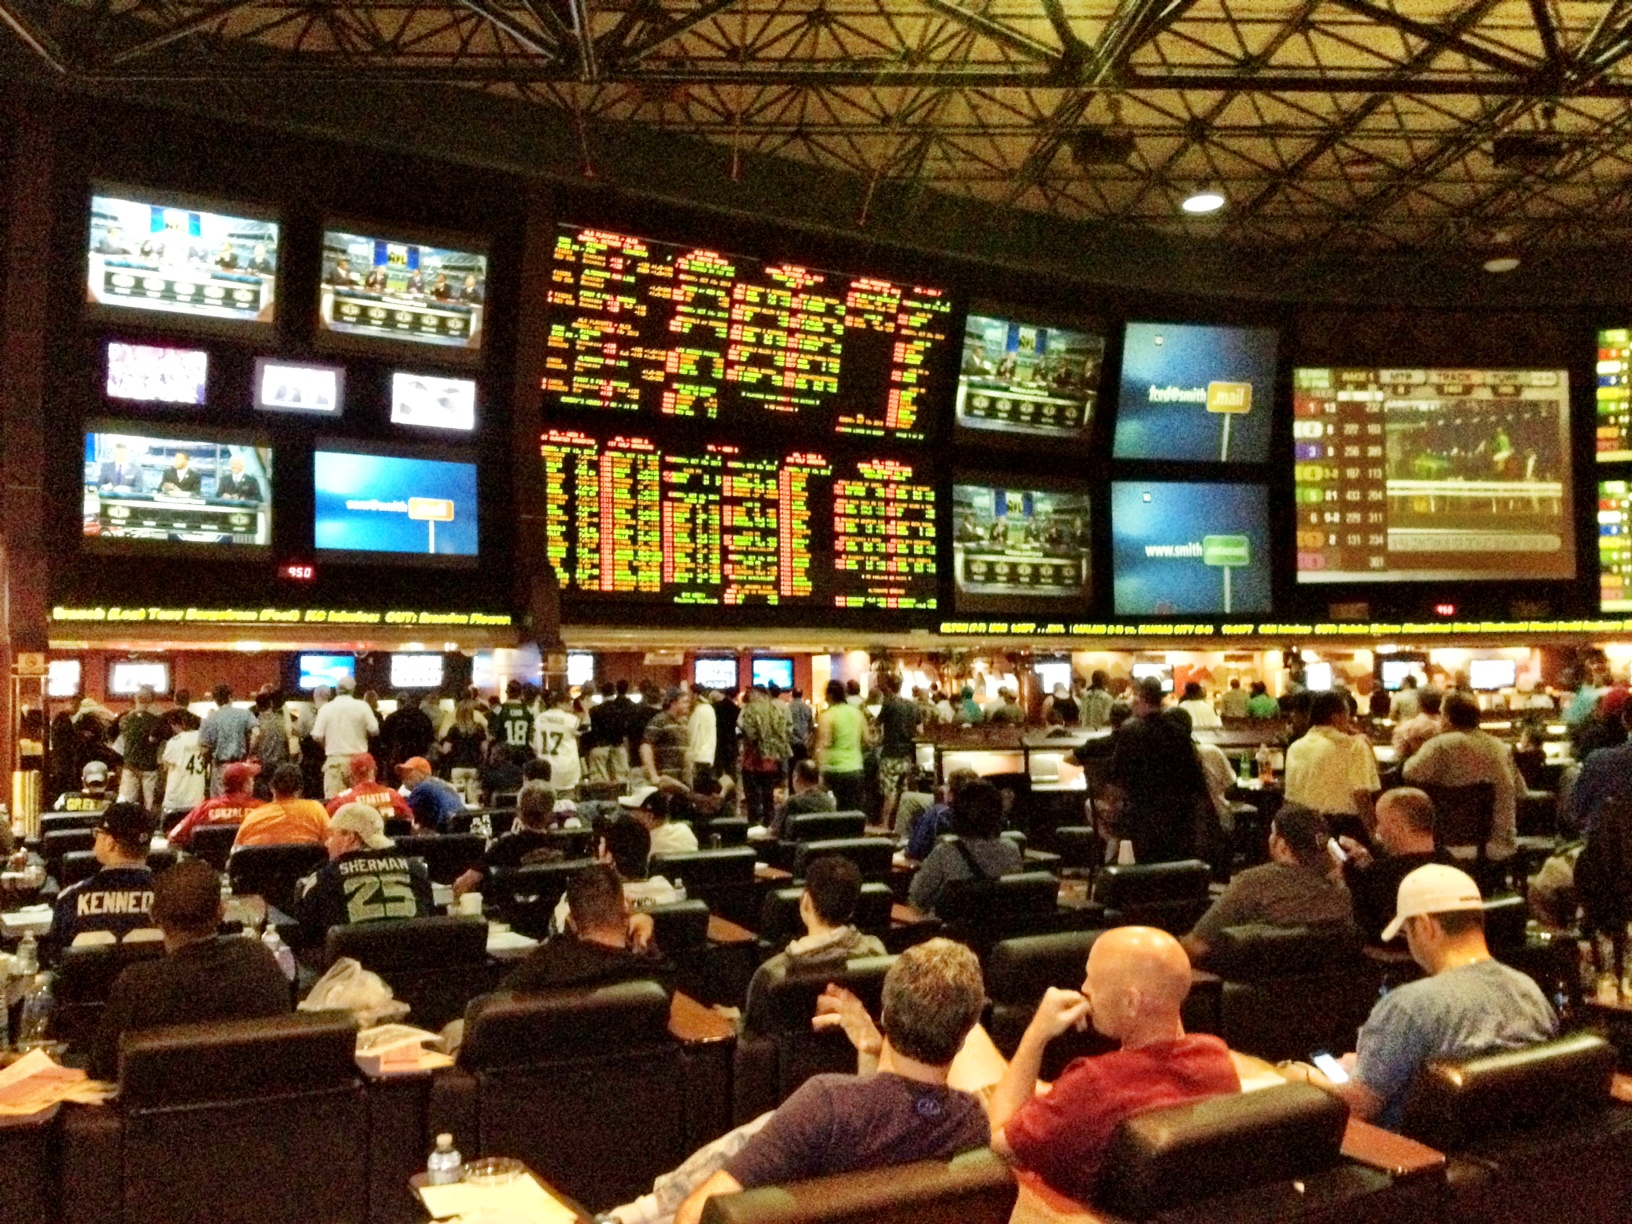 nfl spread vegas bet on sportsbook